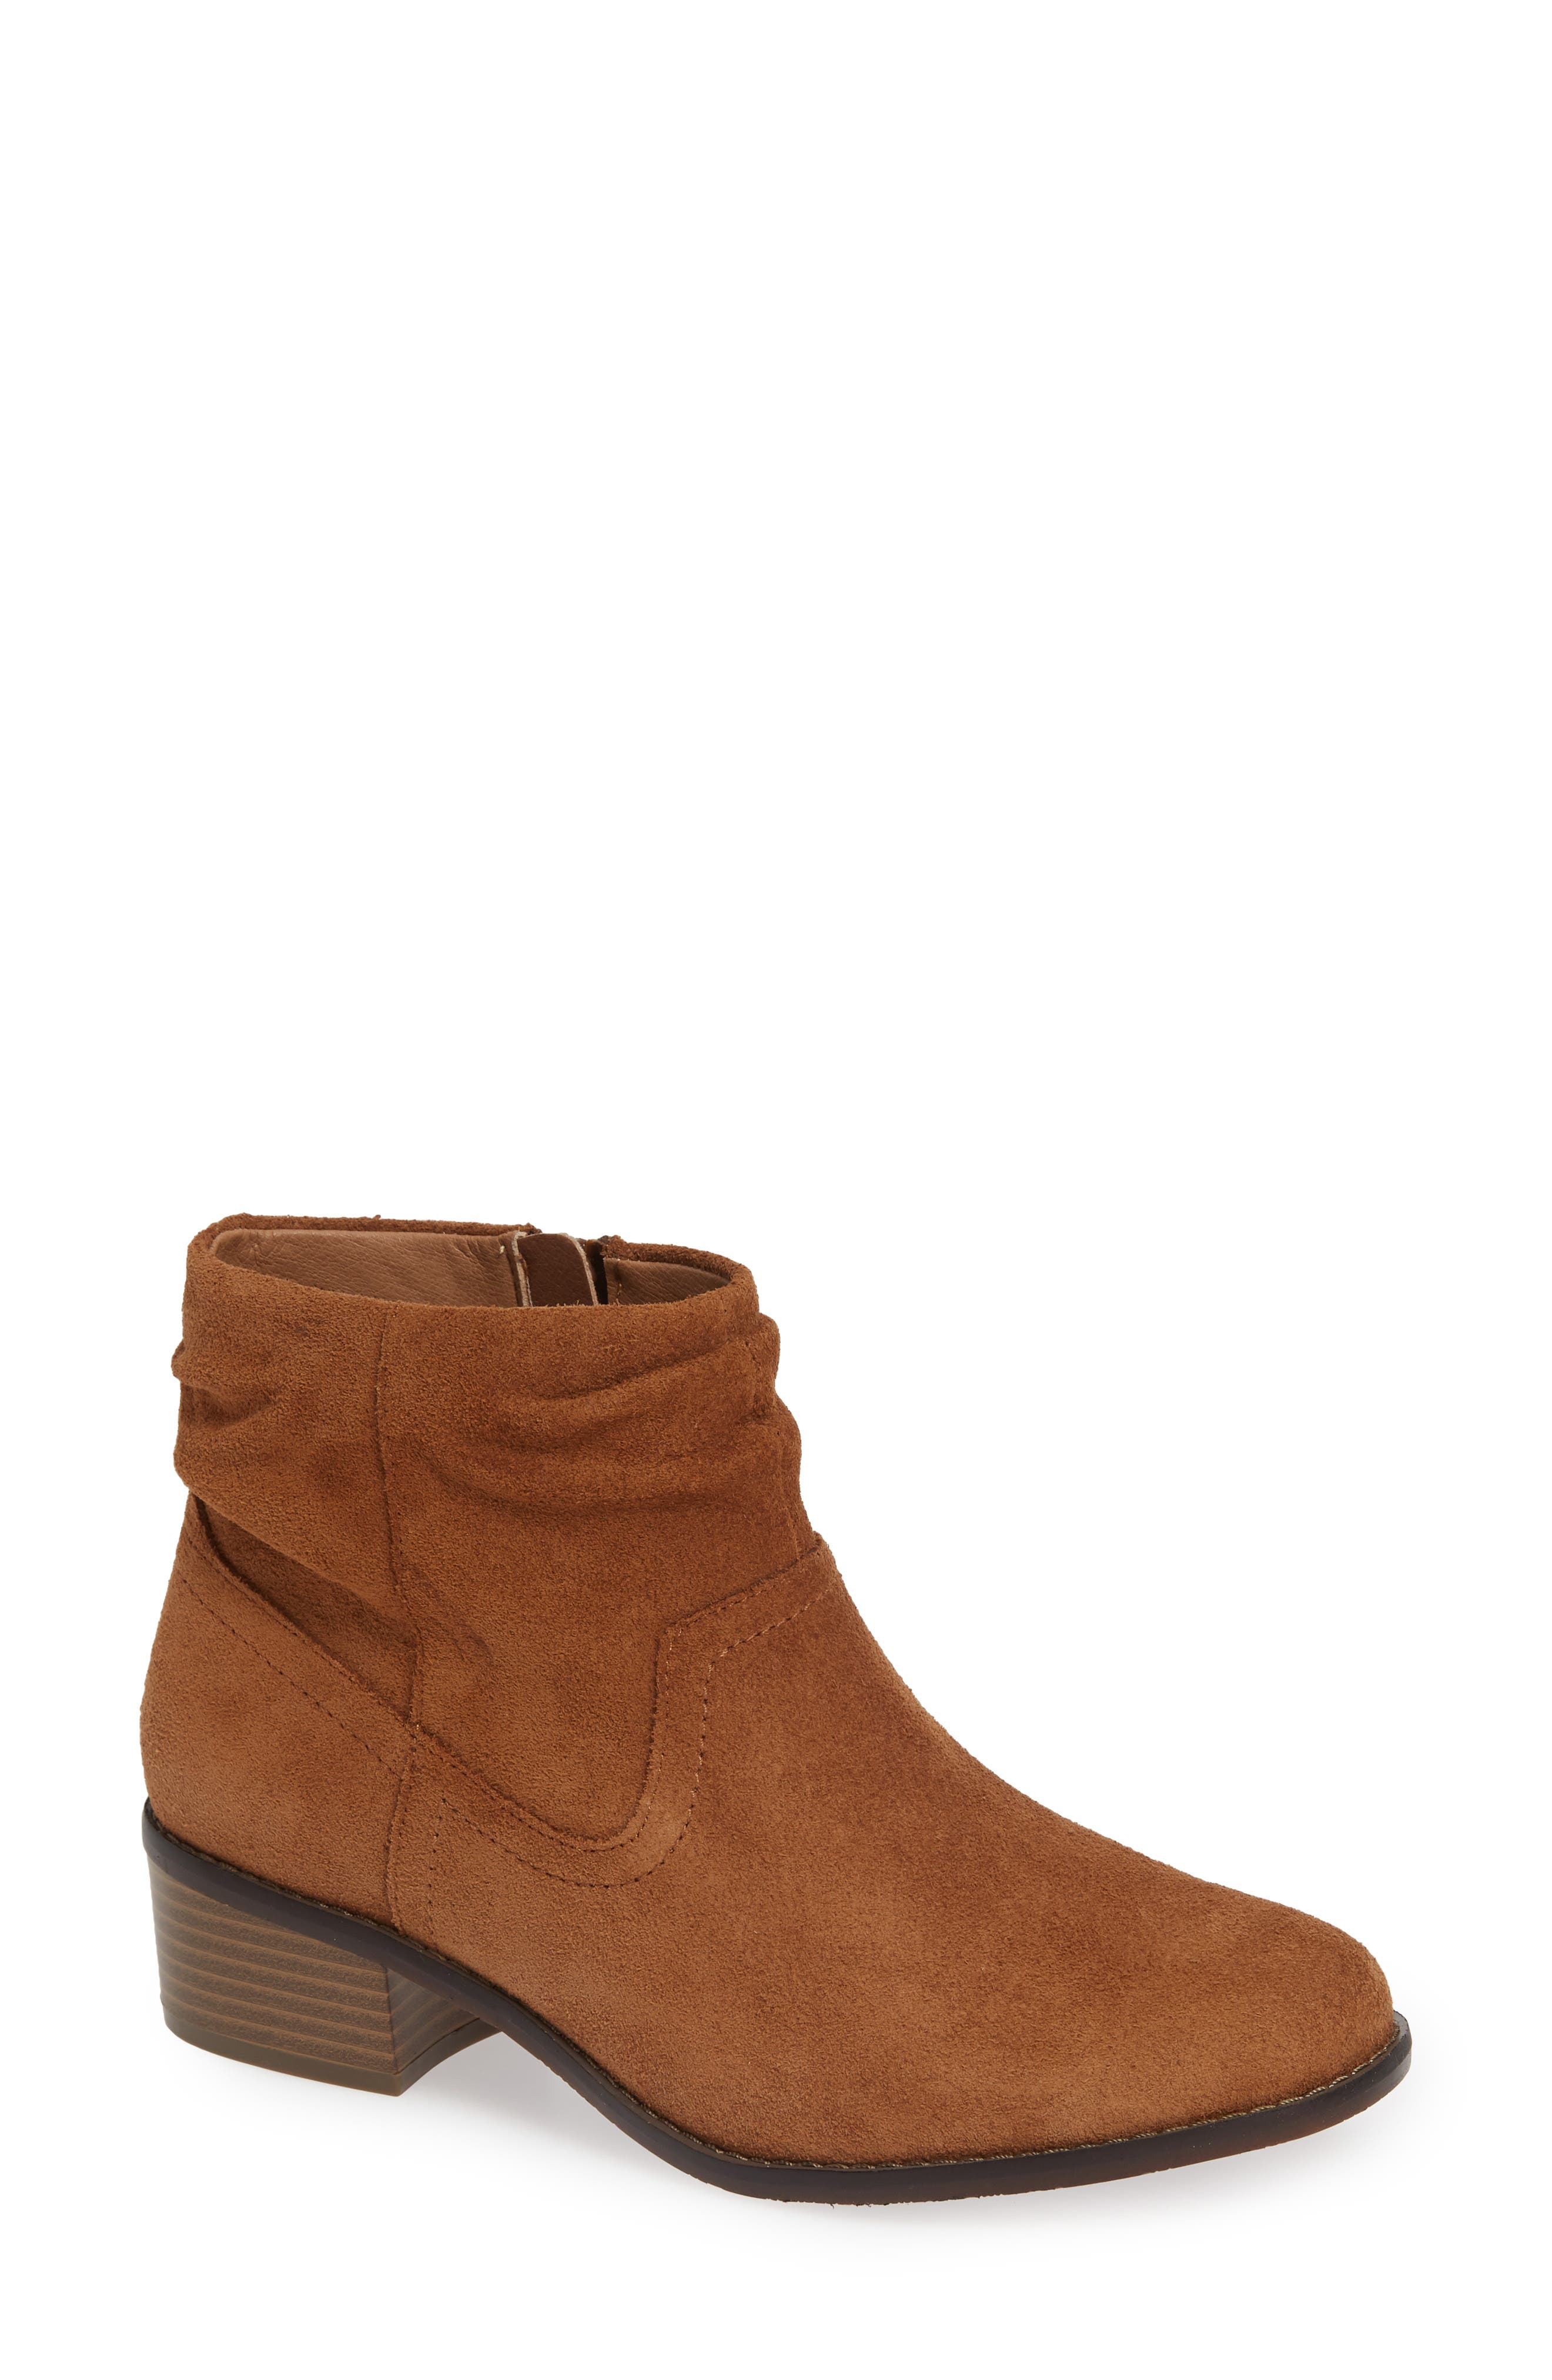 Kanela Low Slouchy Bootie,                             Main thumbnail 1, color,                             TOFFEE SUEDE